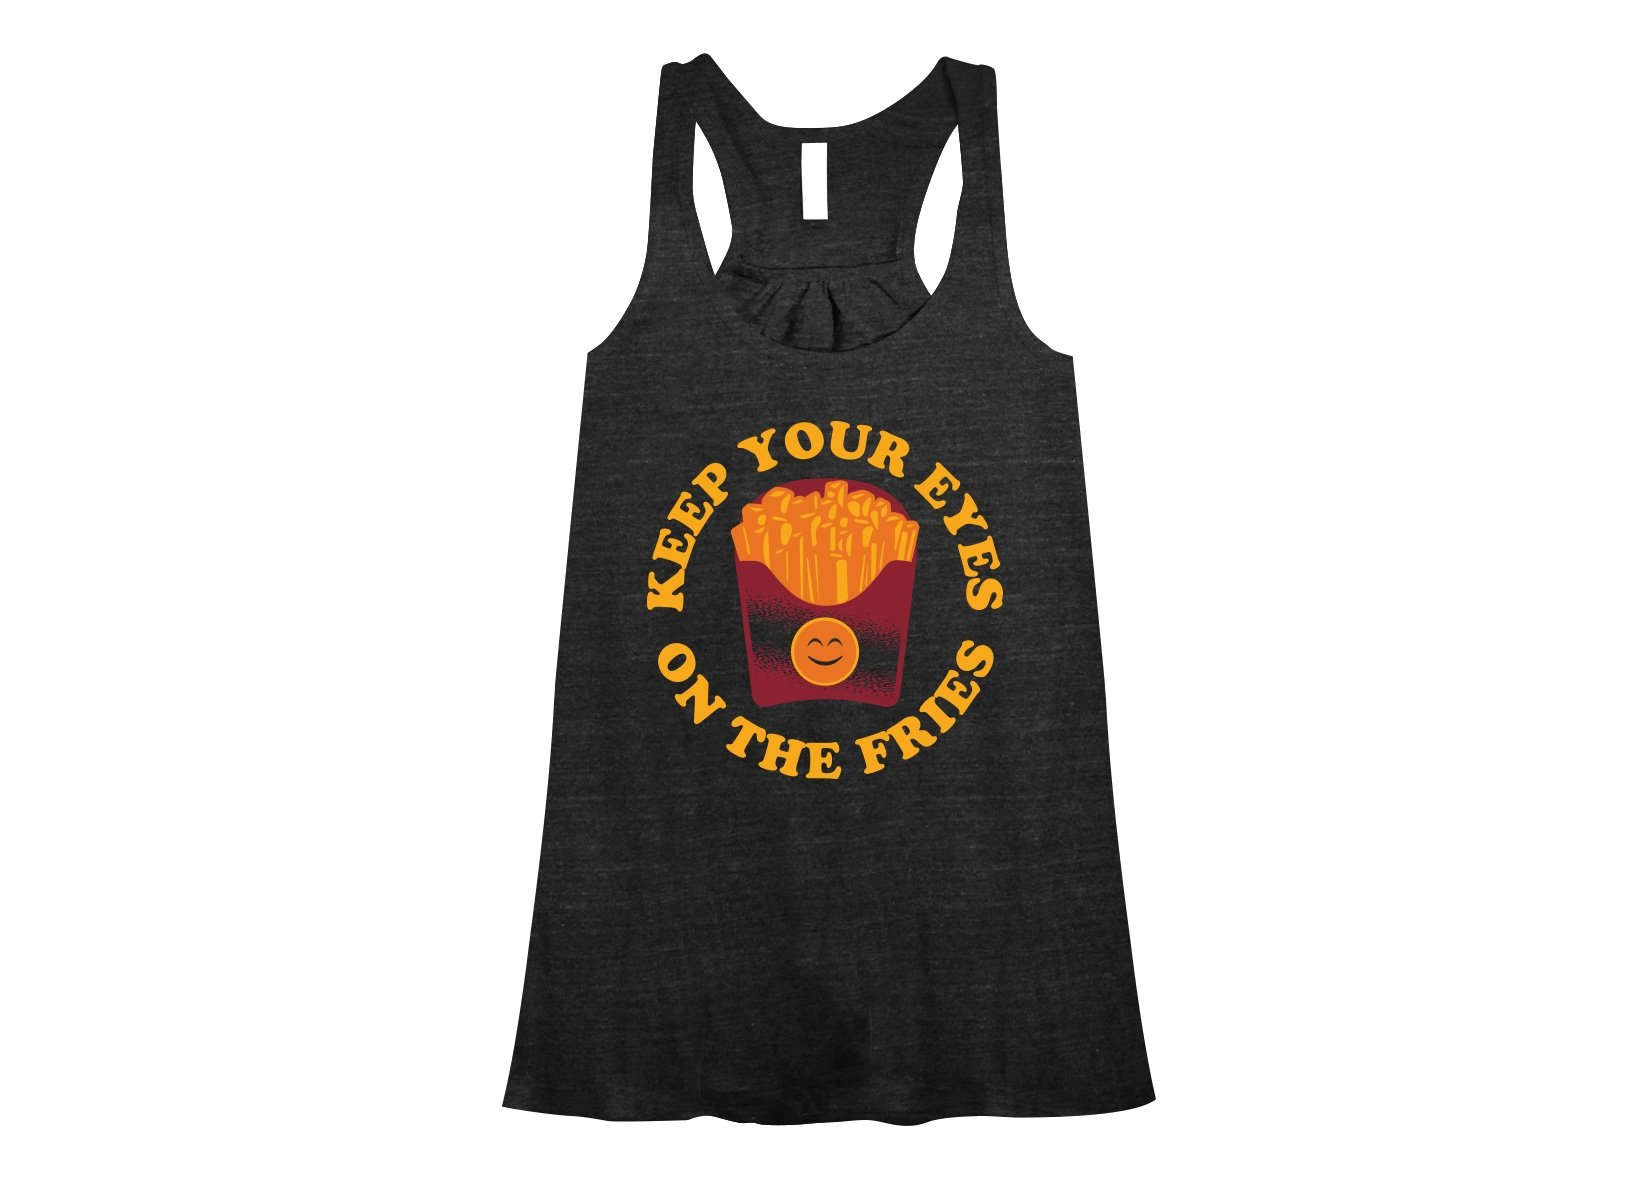 Keep Your Eyes On The Fries on Womens Tanks T-Shirt